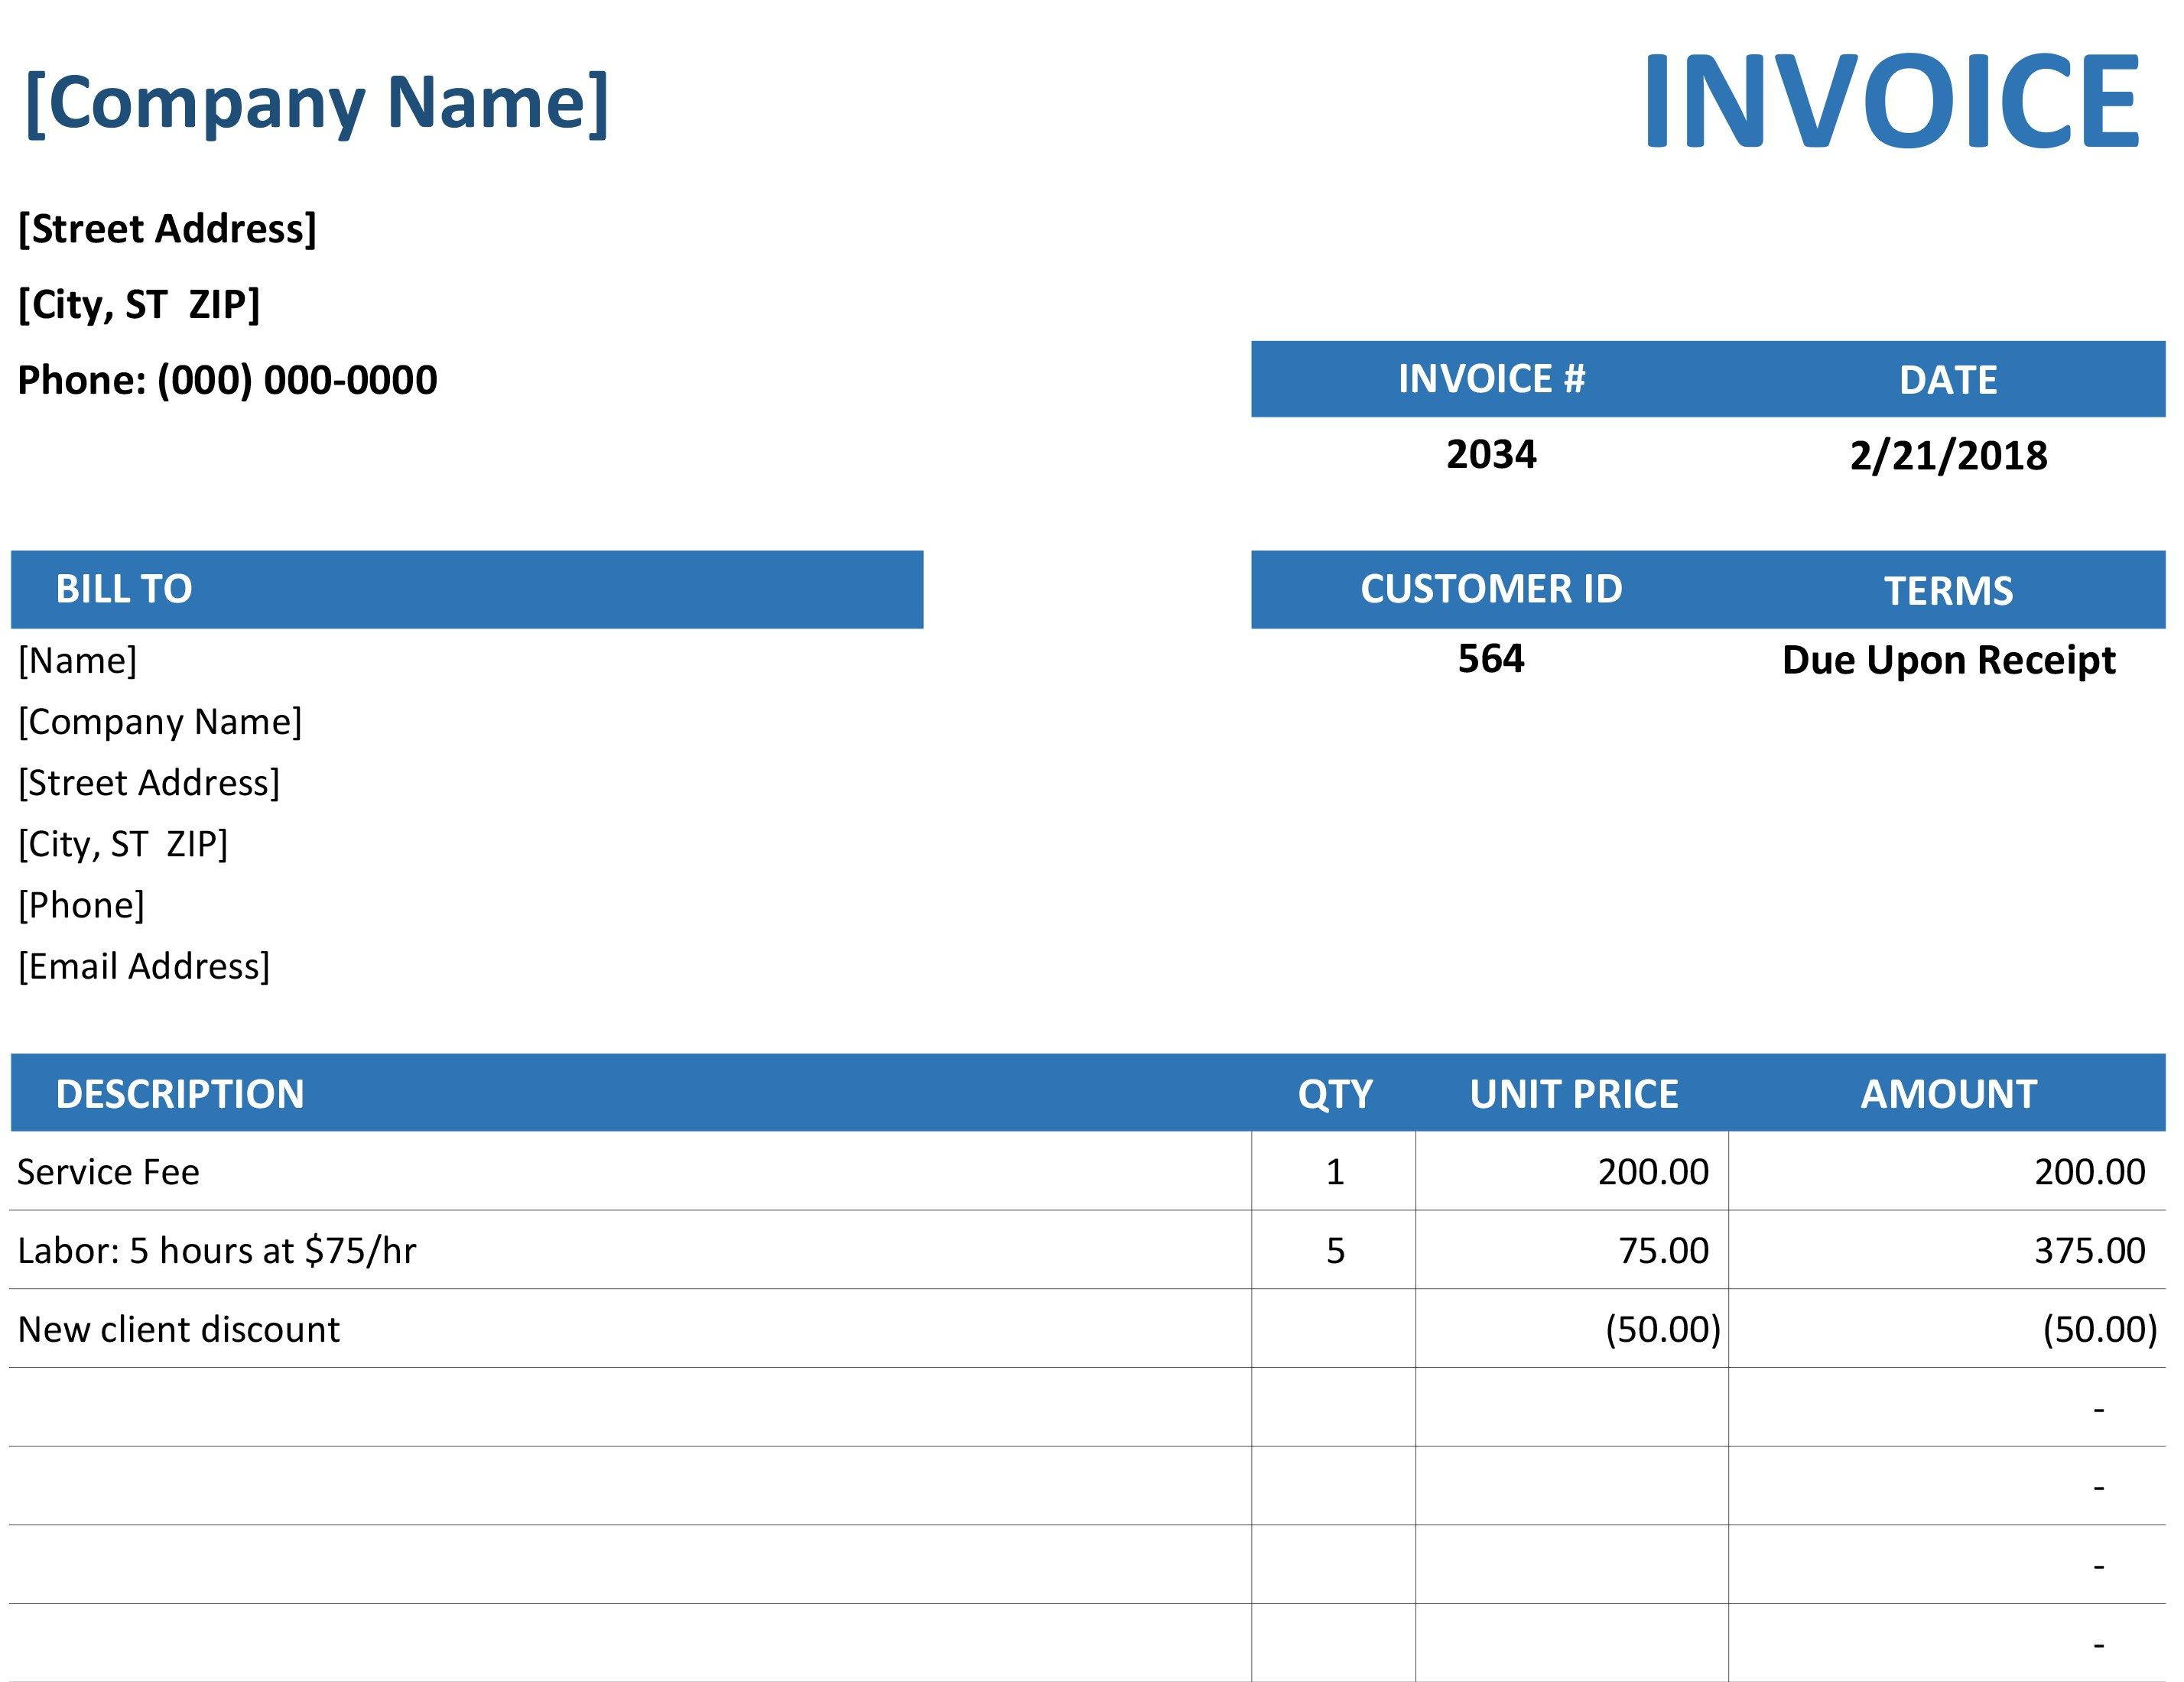 Create A Professional Invoice Or Receipt For Your Small Business Using This Template Provided By Verte Invoice Template Word Printable Invoice Invoice Template